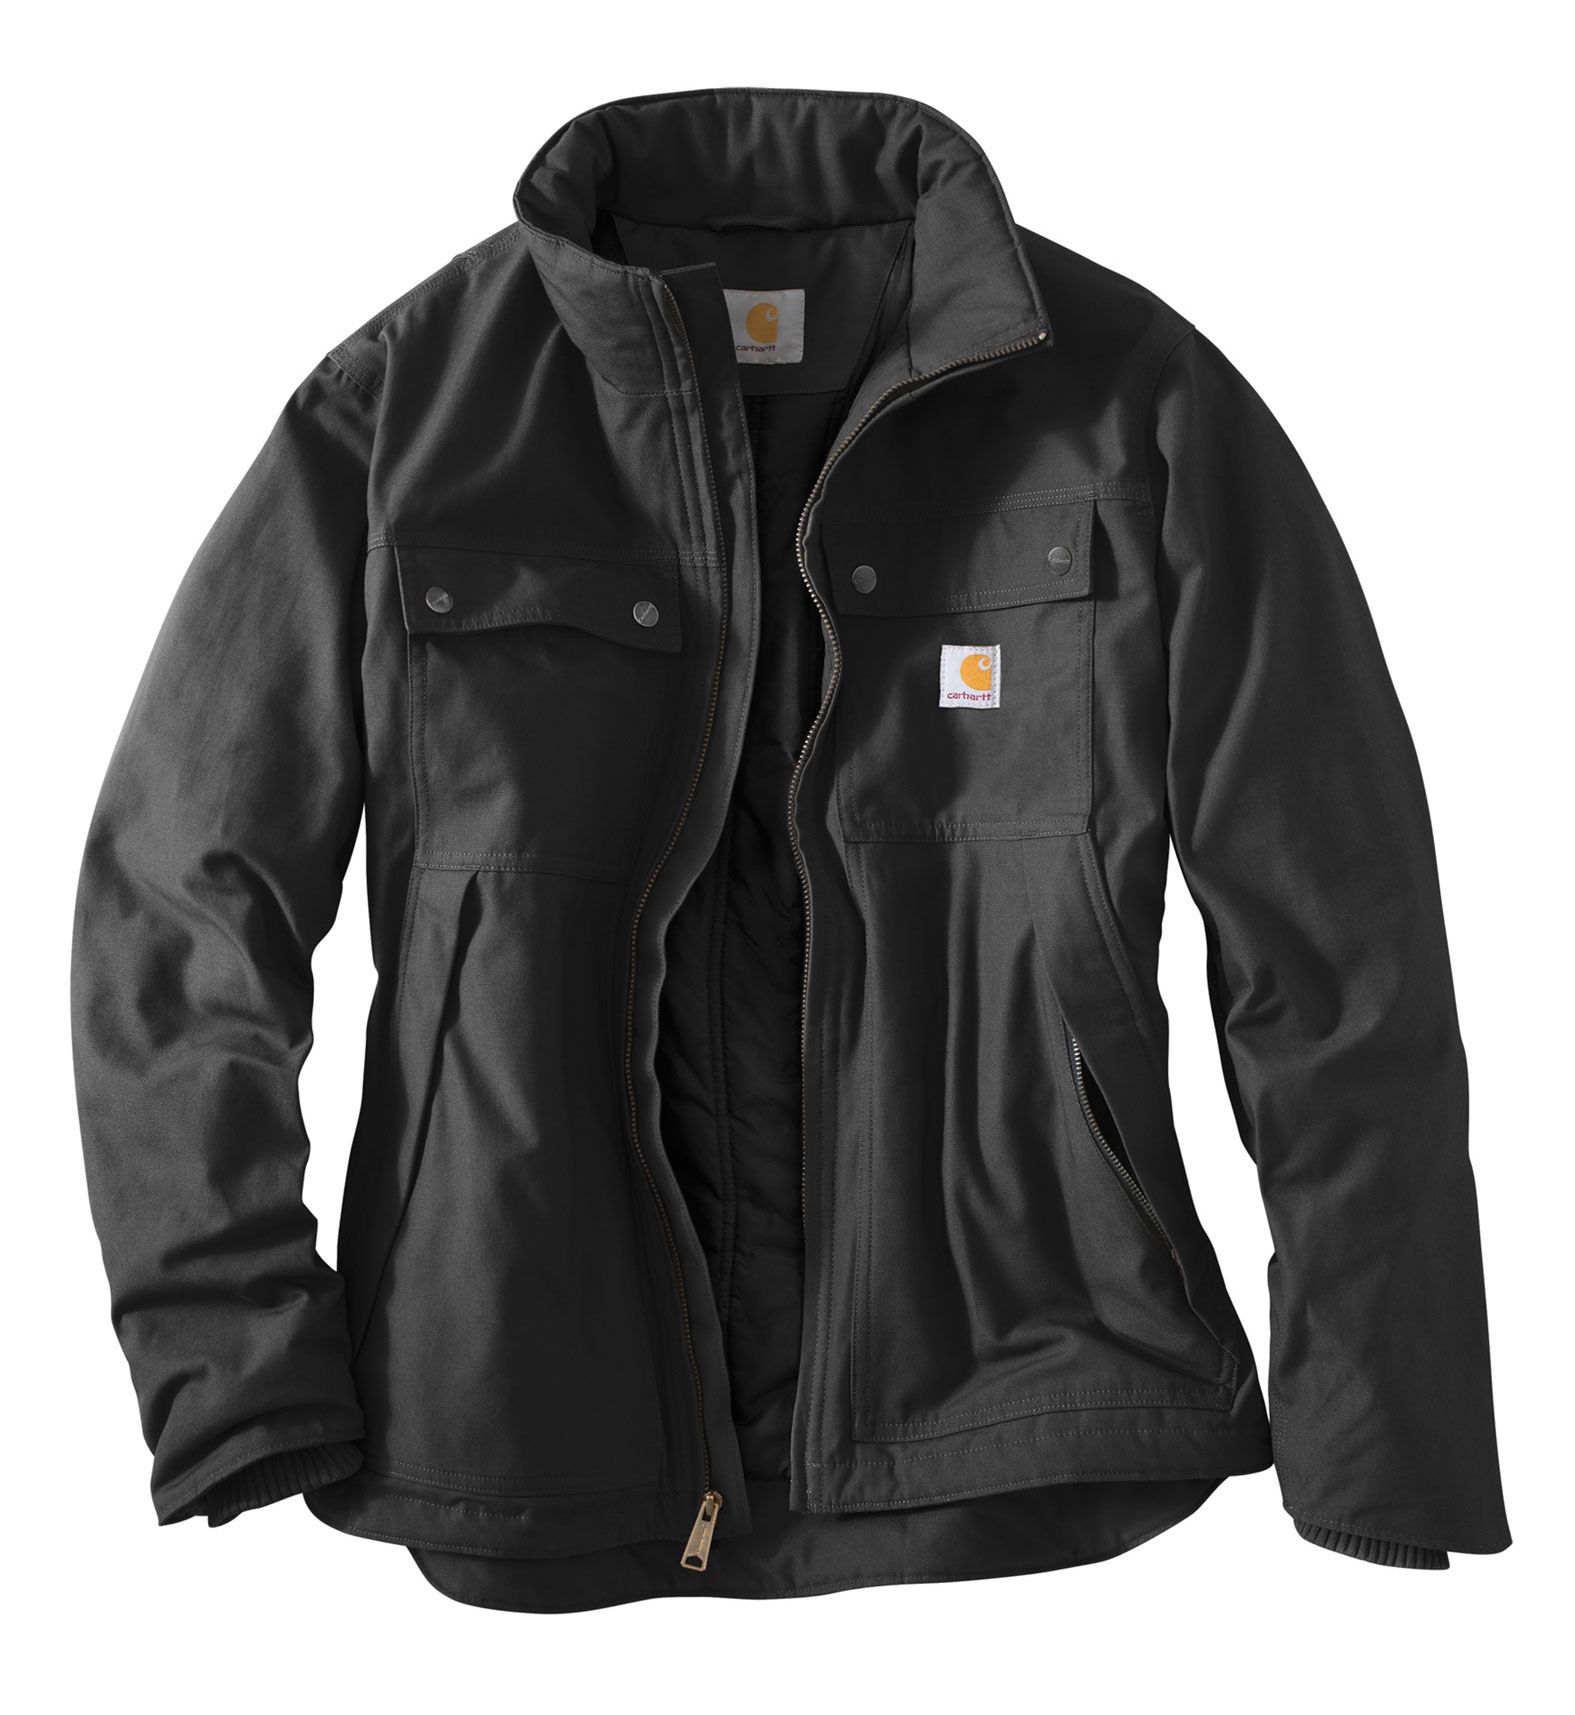 QuickDuck Jefferson™ Traditional Jacket by Carhartt